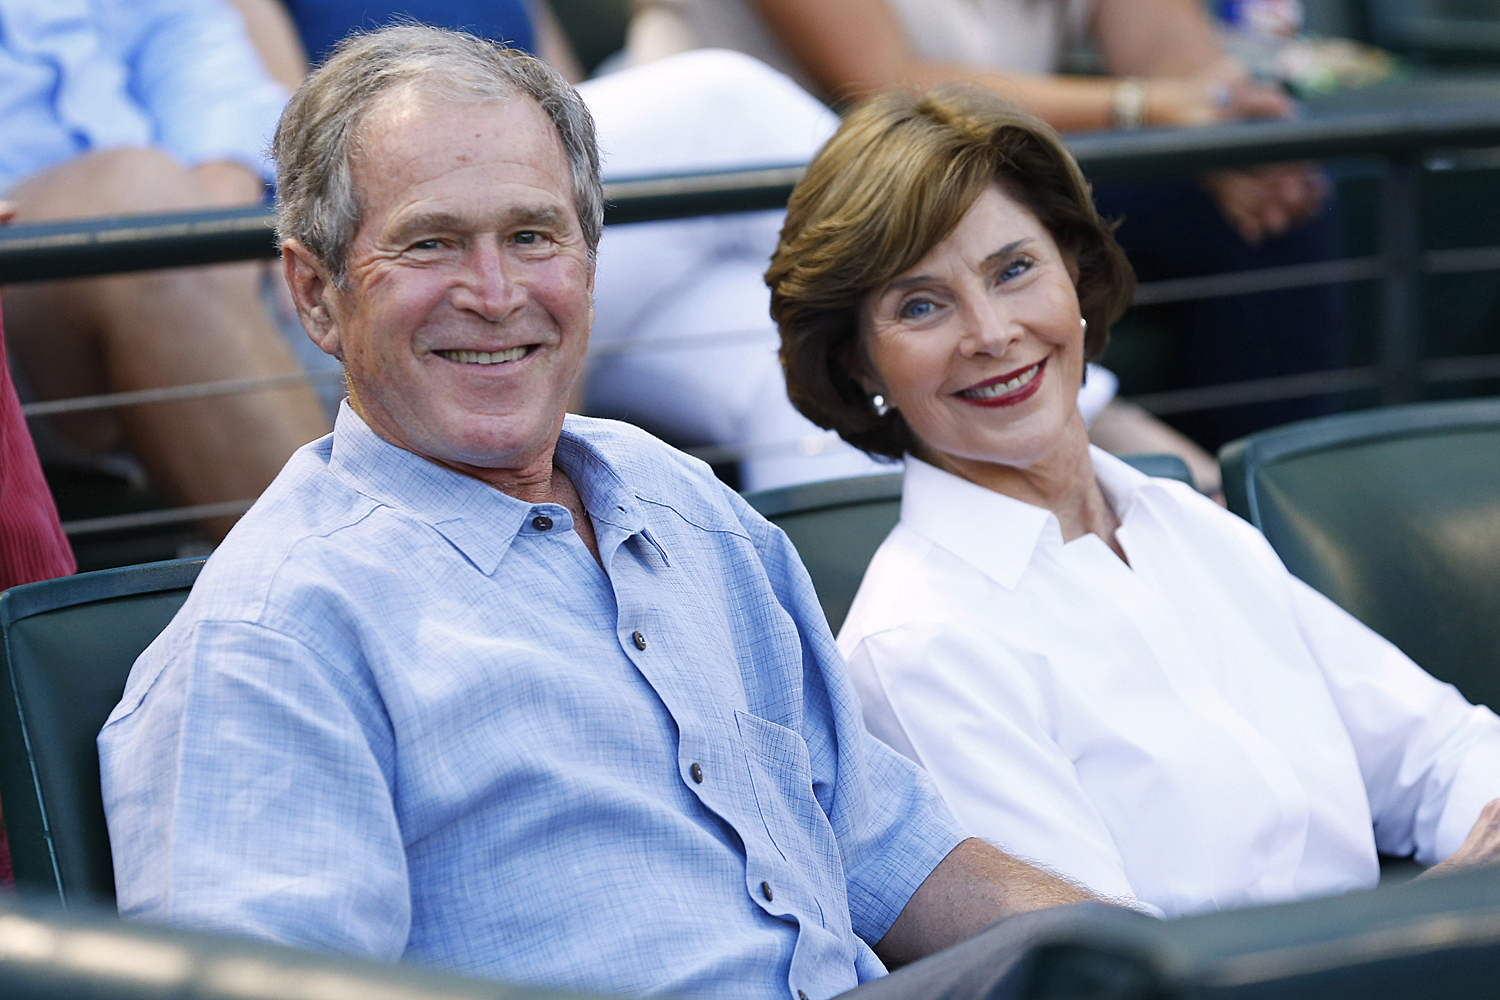 George W. and Laura Bush 'Look Forward' to Attending Joe Biden's  Inauguration | PEOPLE.com